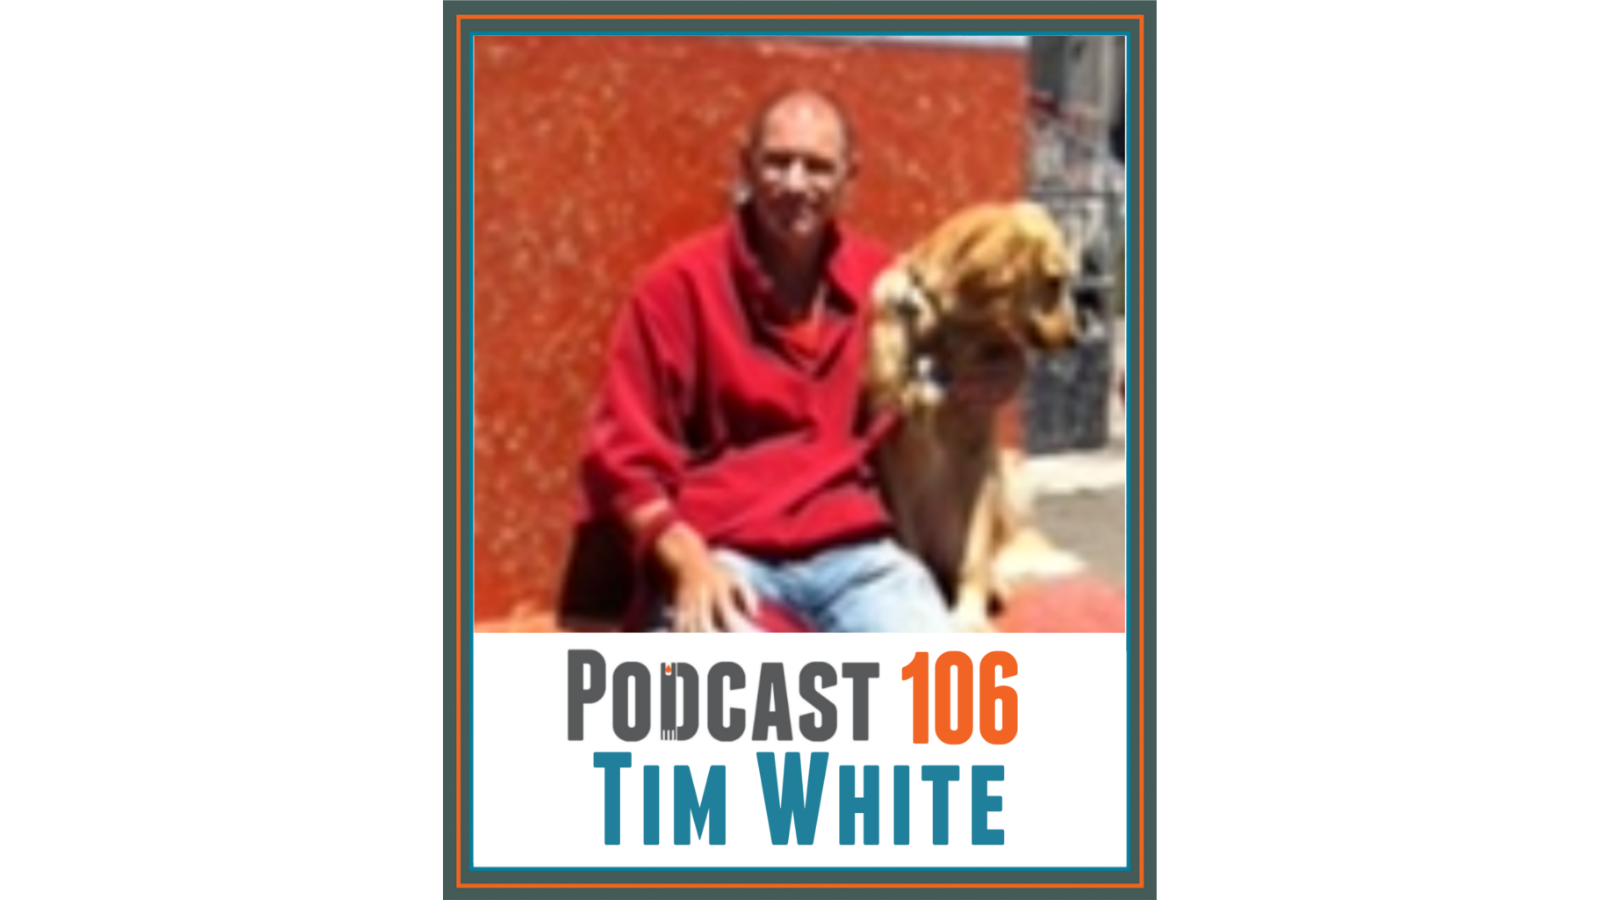 Real Life Diabetes Podcast, Featuring Tim White